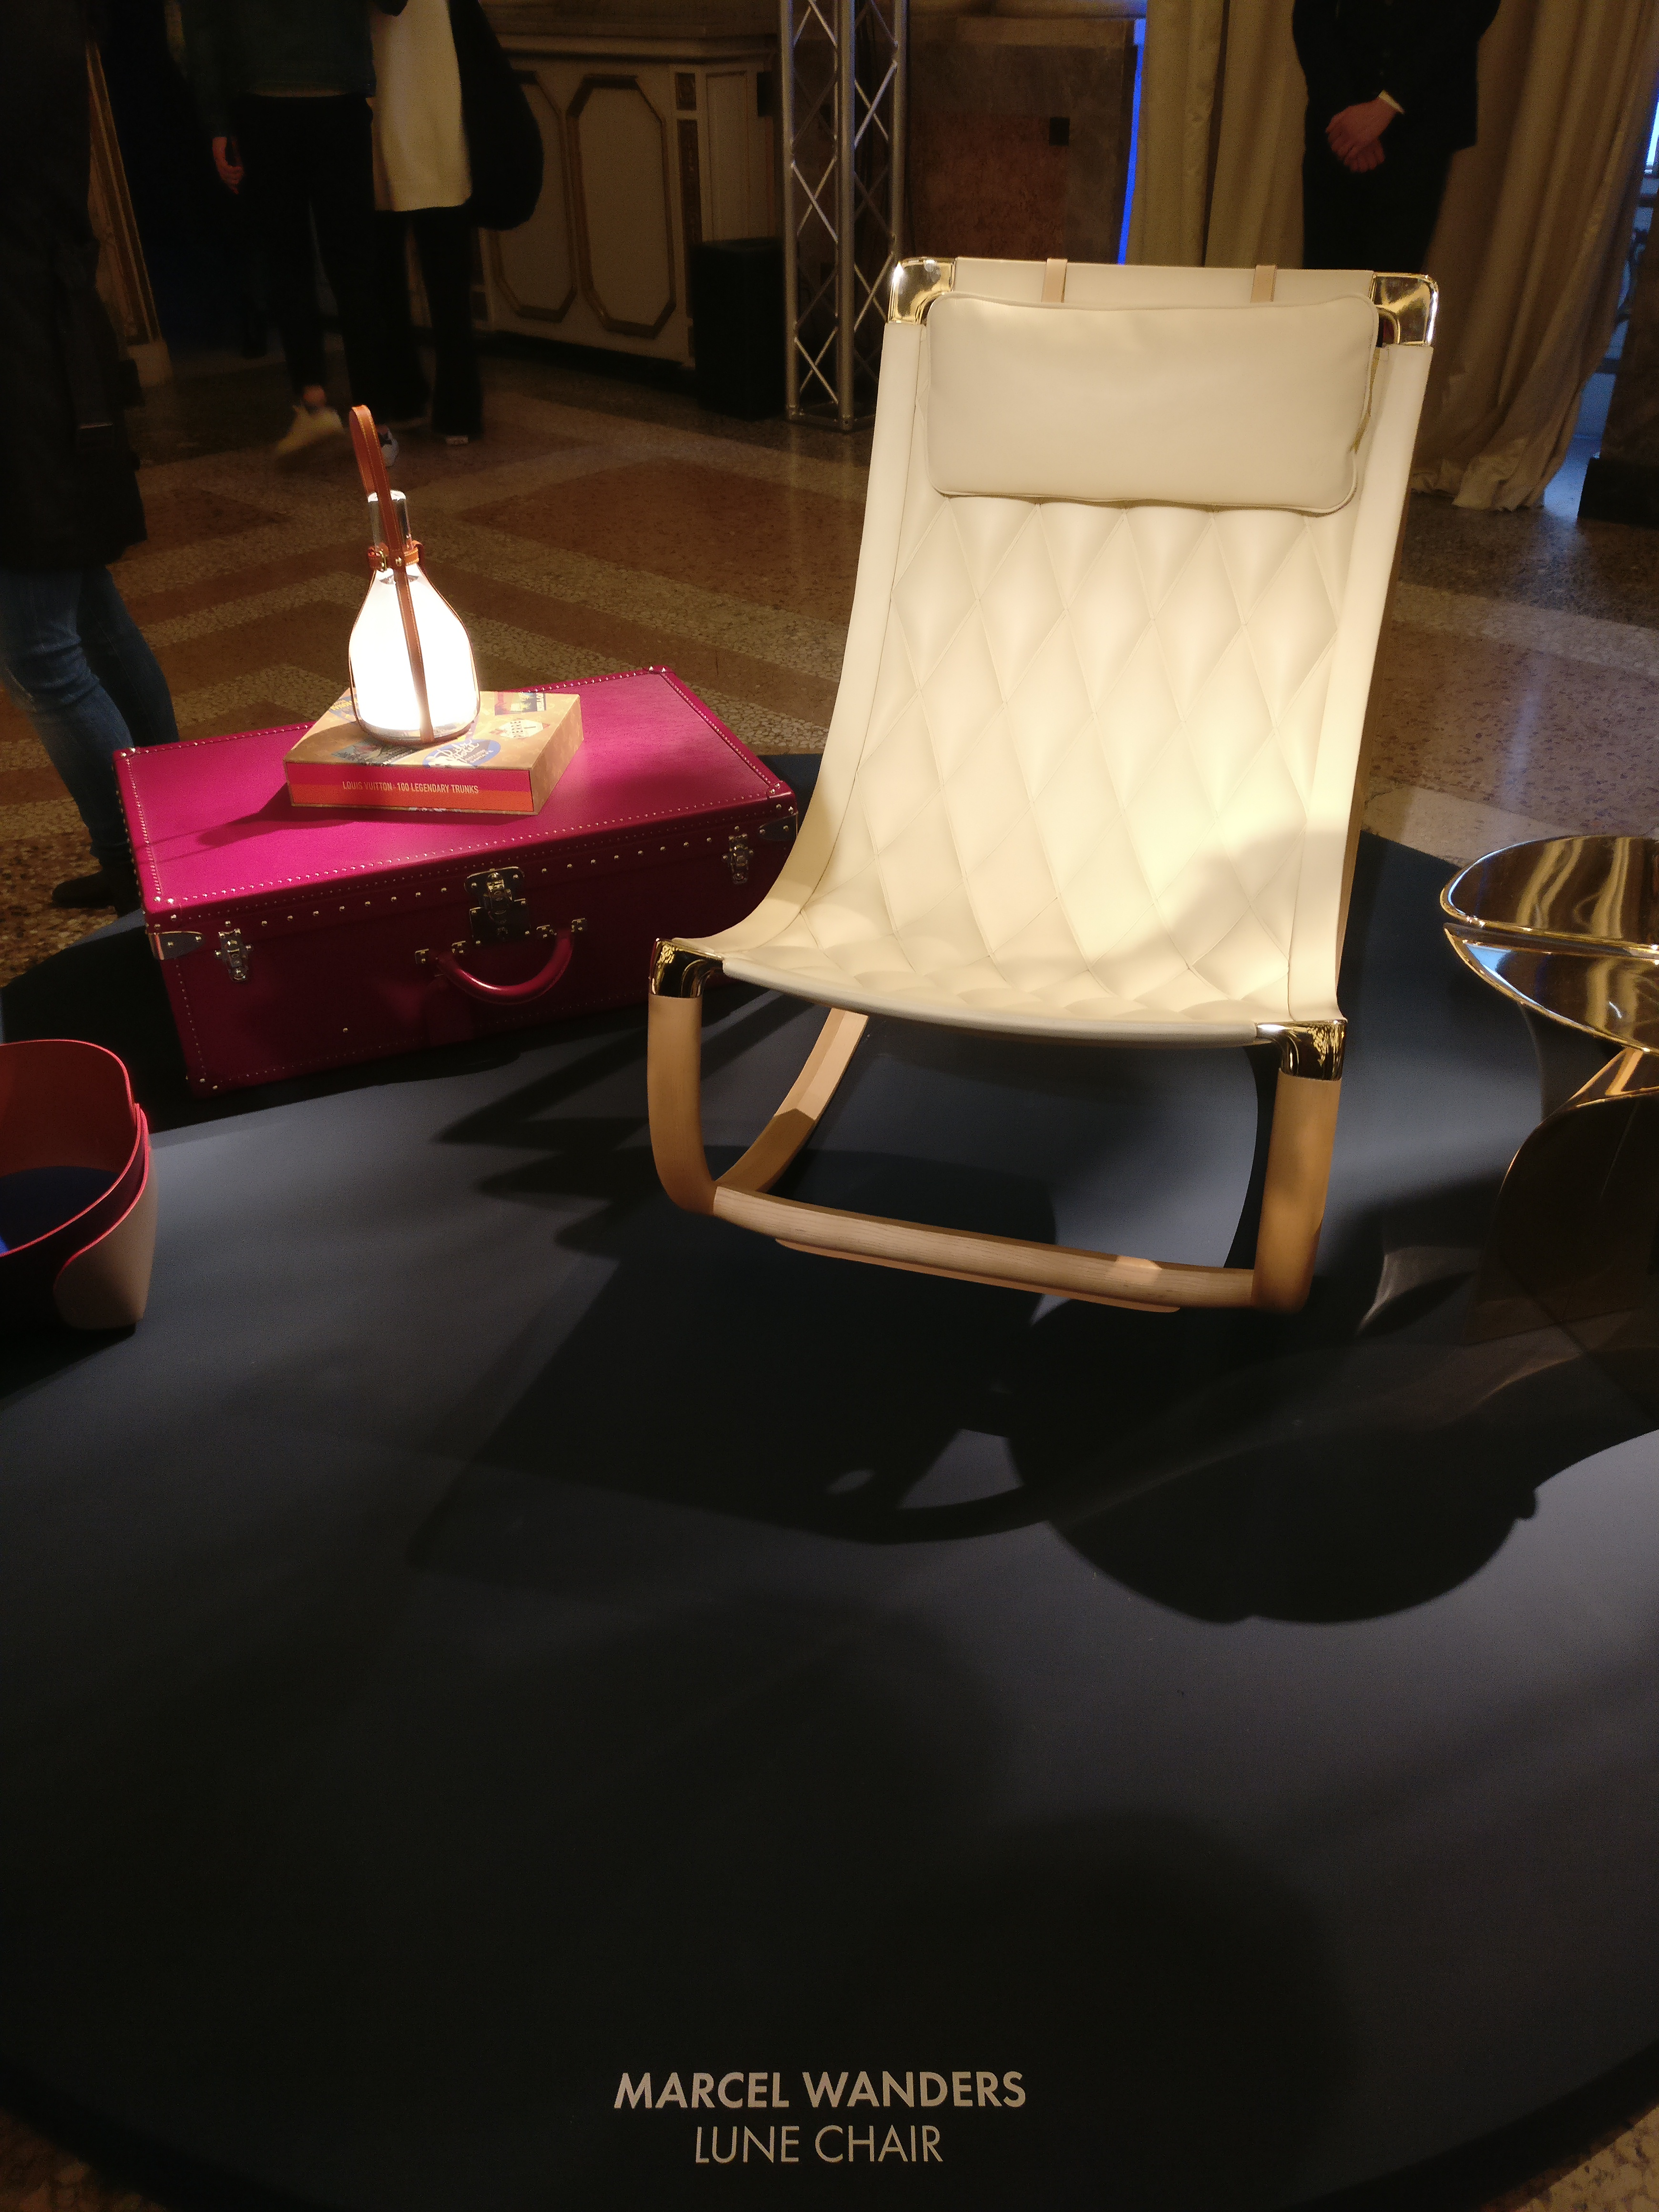 Lune Chair by Marcel Wanders| Louis Vuitton| Objets Nomades | Fuorisalone 2019| STIR